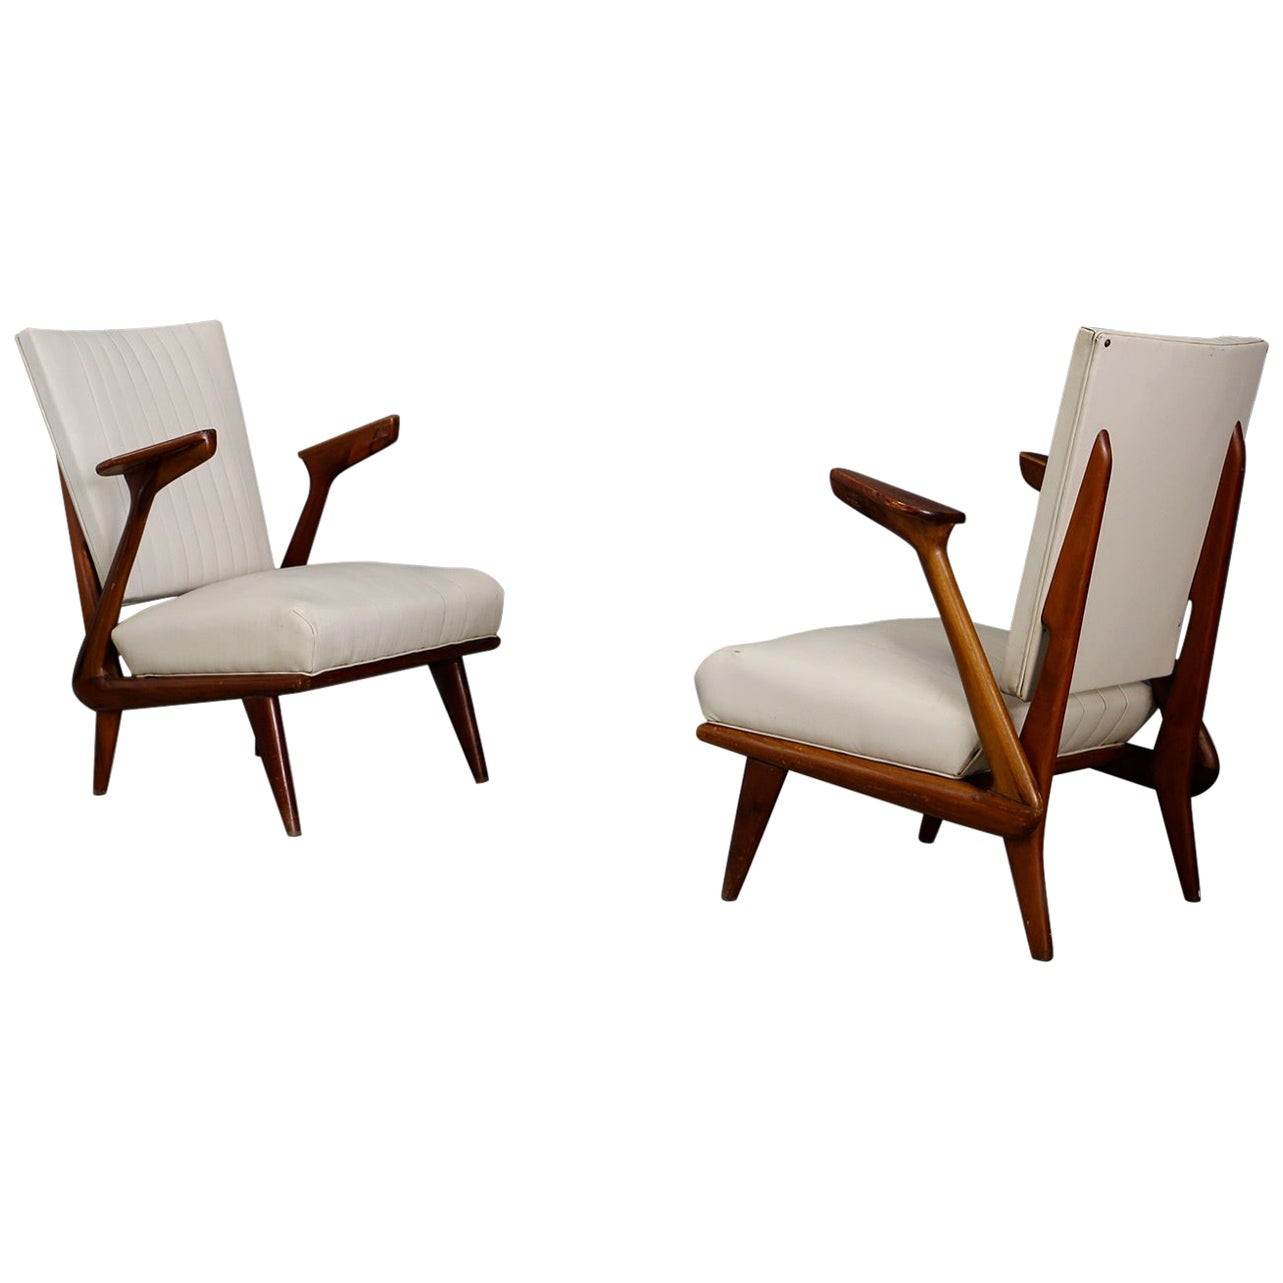 Pair of Midcentury Armchairs by Giuseppe Scapinelli in Solid Wood, 1950s